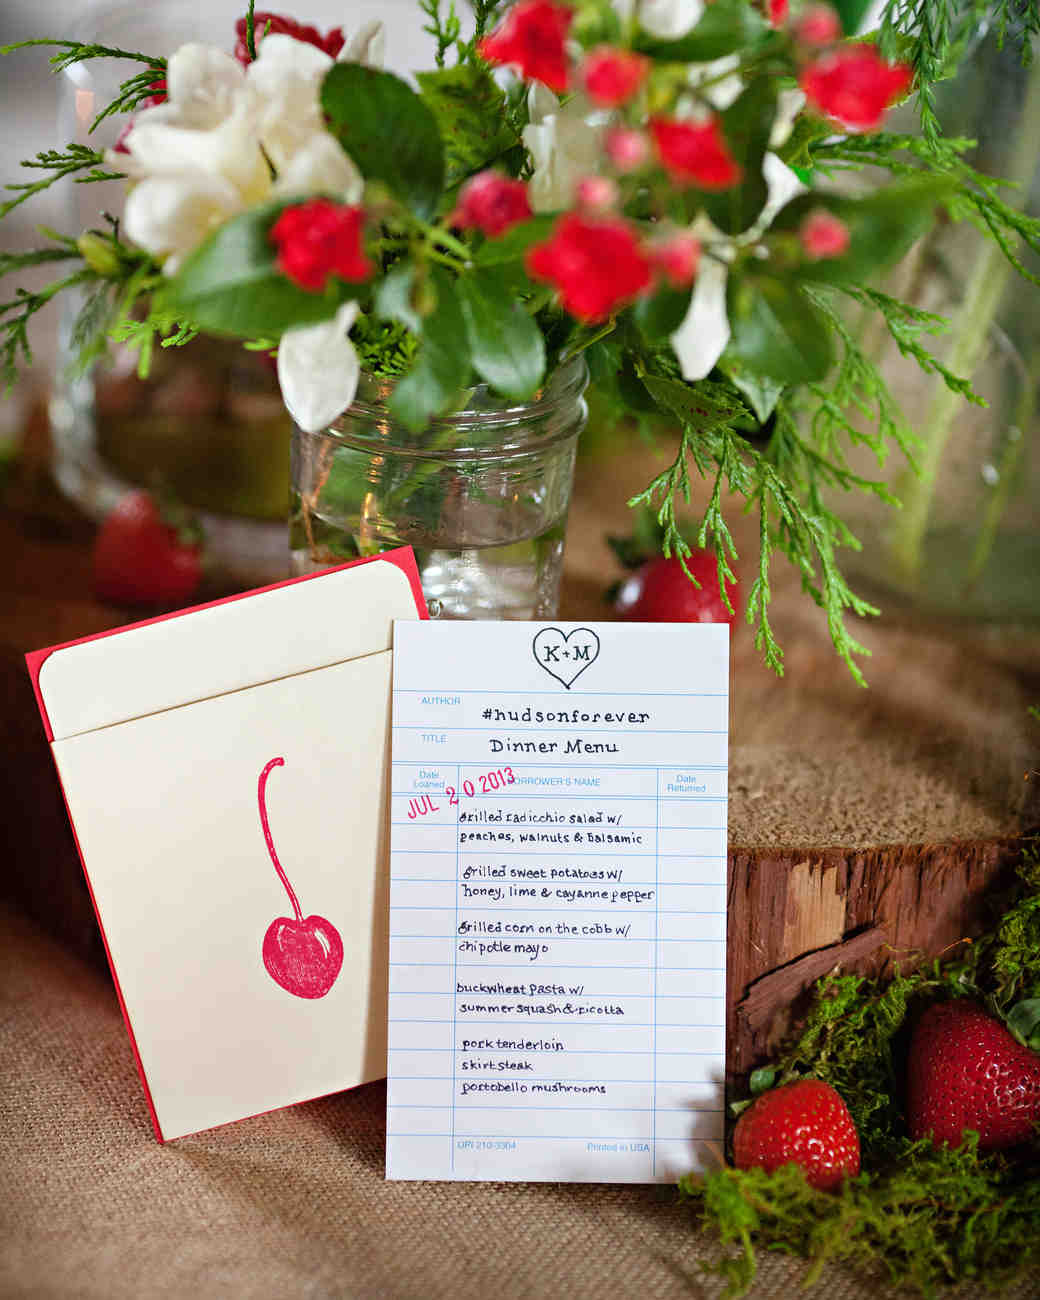 kristy-marc-wedding-menu-0414.jpg